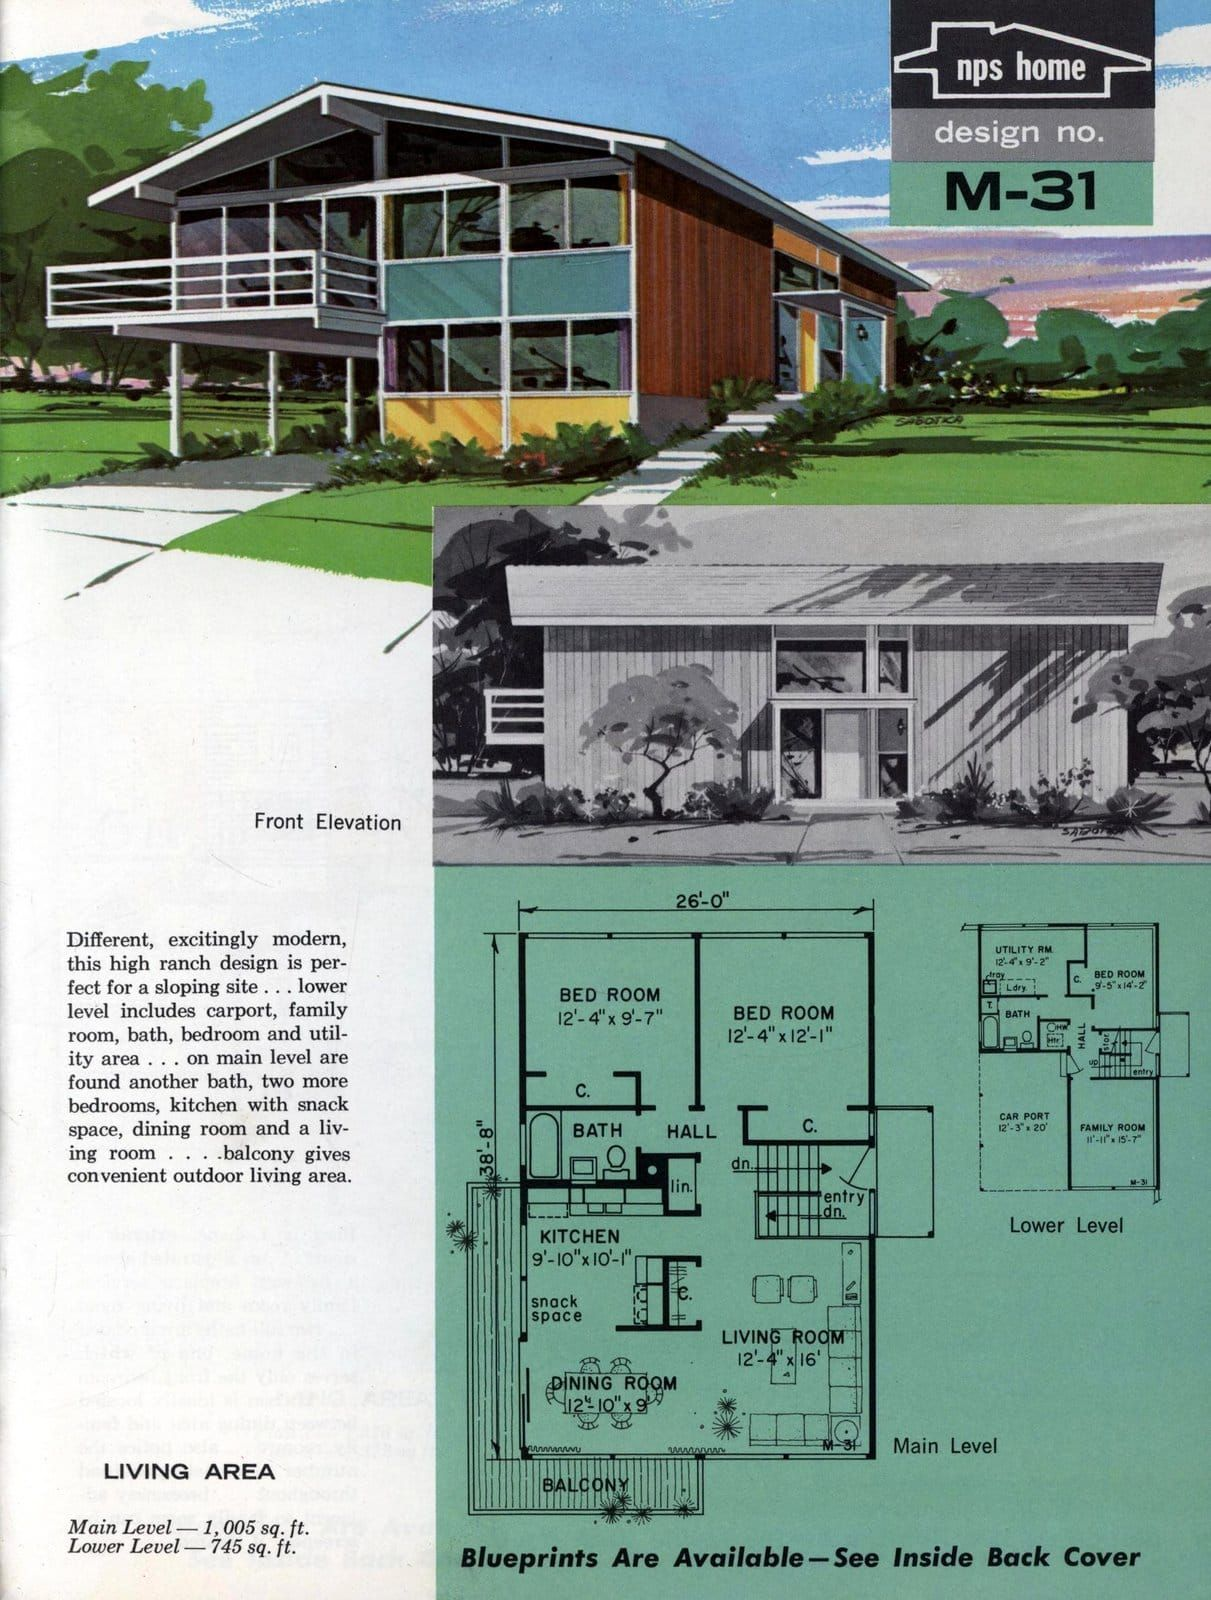 Pin By Jsj On Eich In 2020 Vintage House Plans Mid Century Modern House Plans Mid Century House